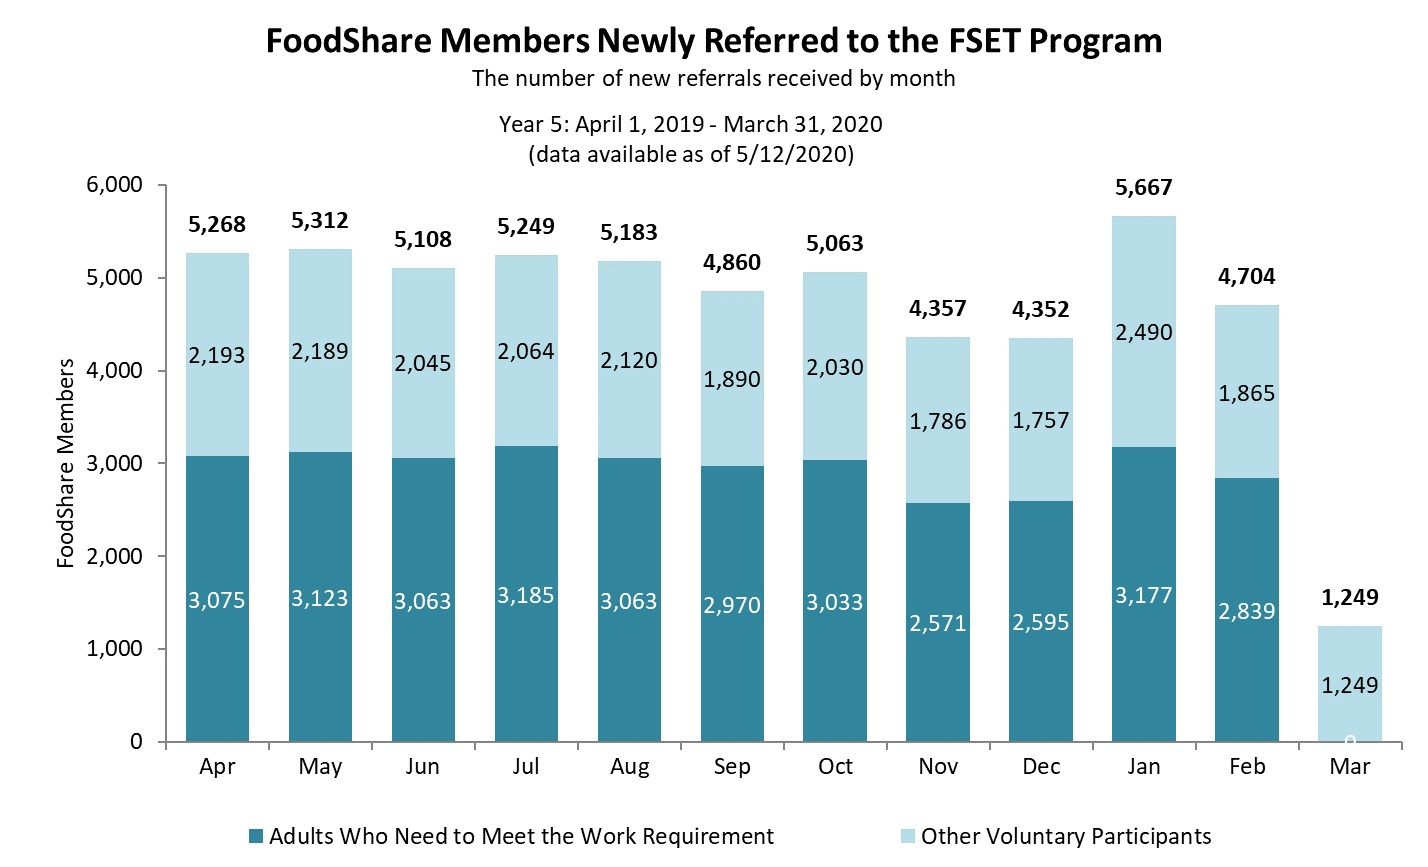 Chart of newly referred FoodShare participants yr 5 as of 8/8/2019